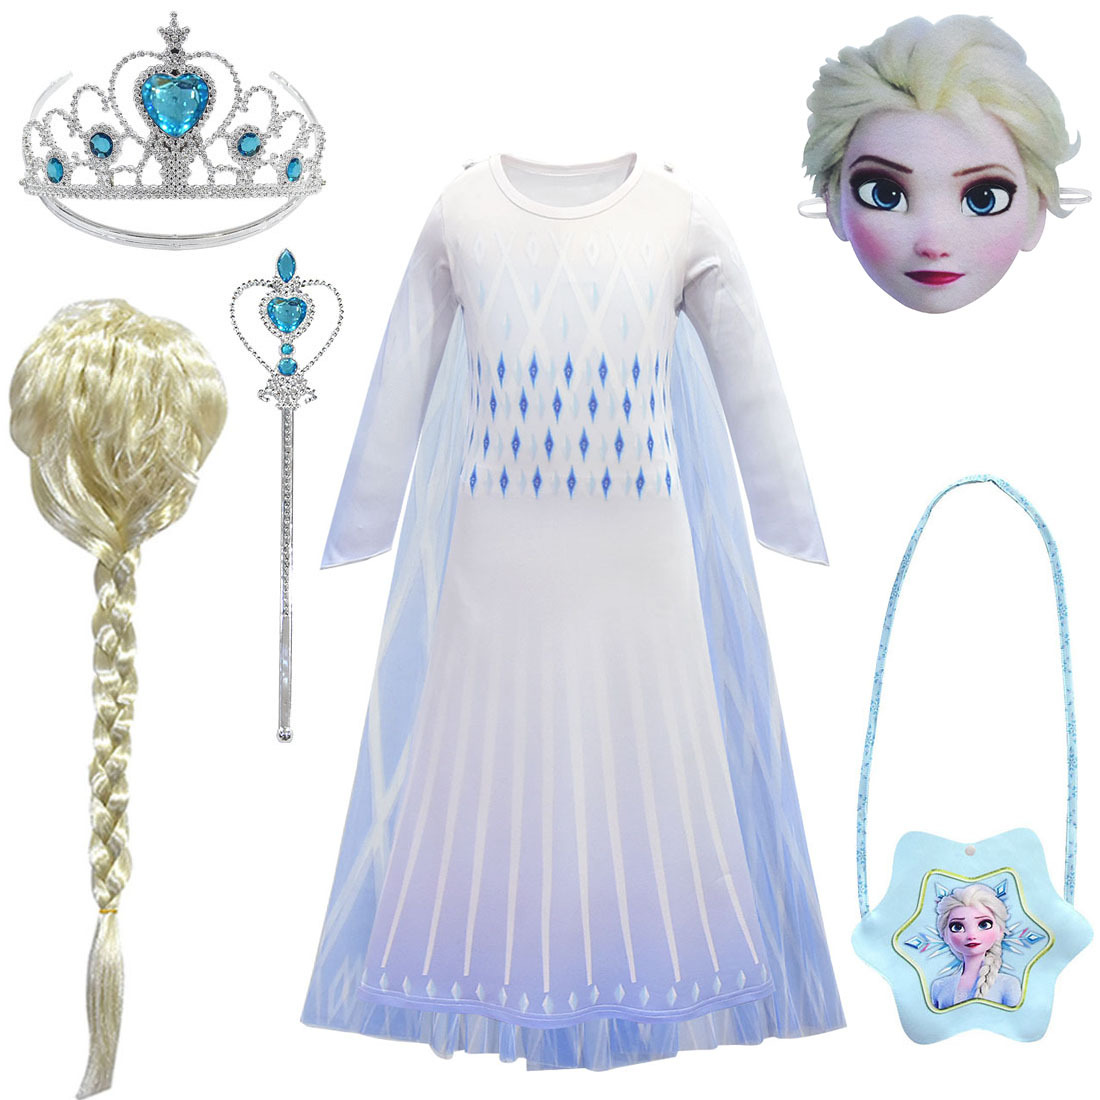 2020 Costume Frozen 2 Cosplay Elsa 2 Anna Princess Dress Kids Dresses For Girls Birthday Party Dresses Girls Wedding Gowns Suits